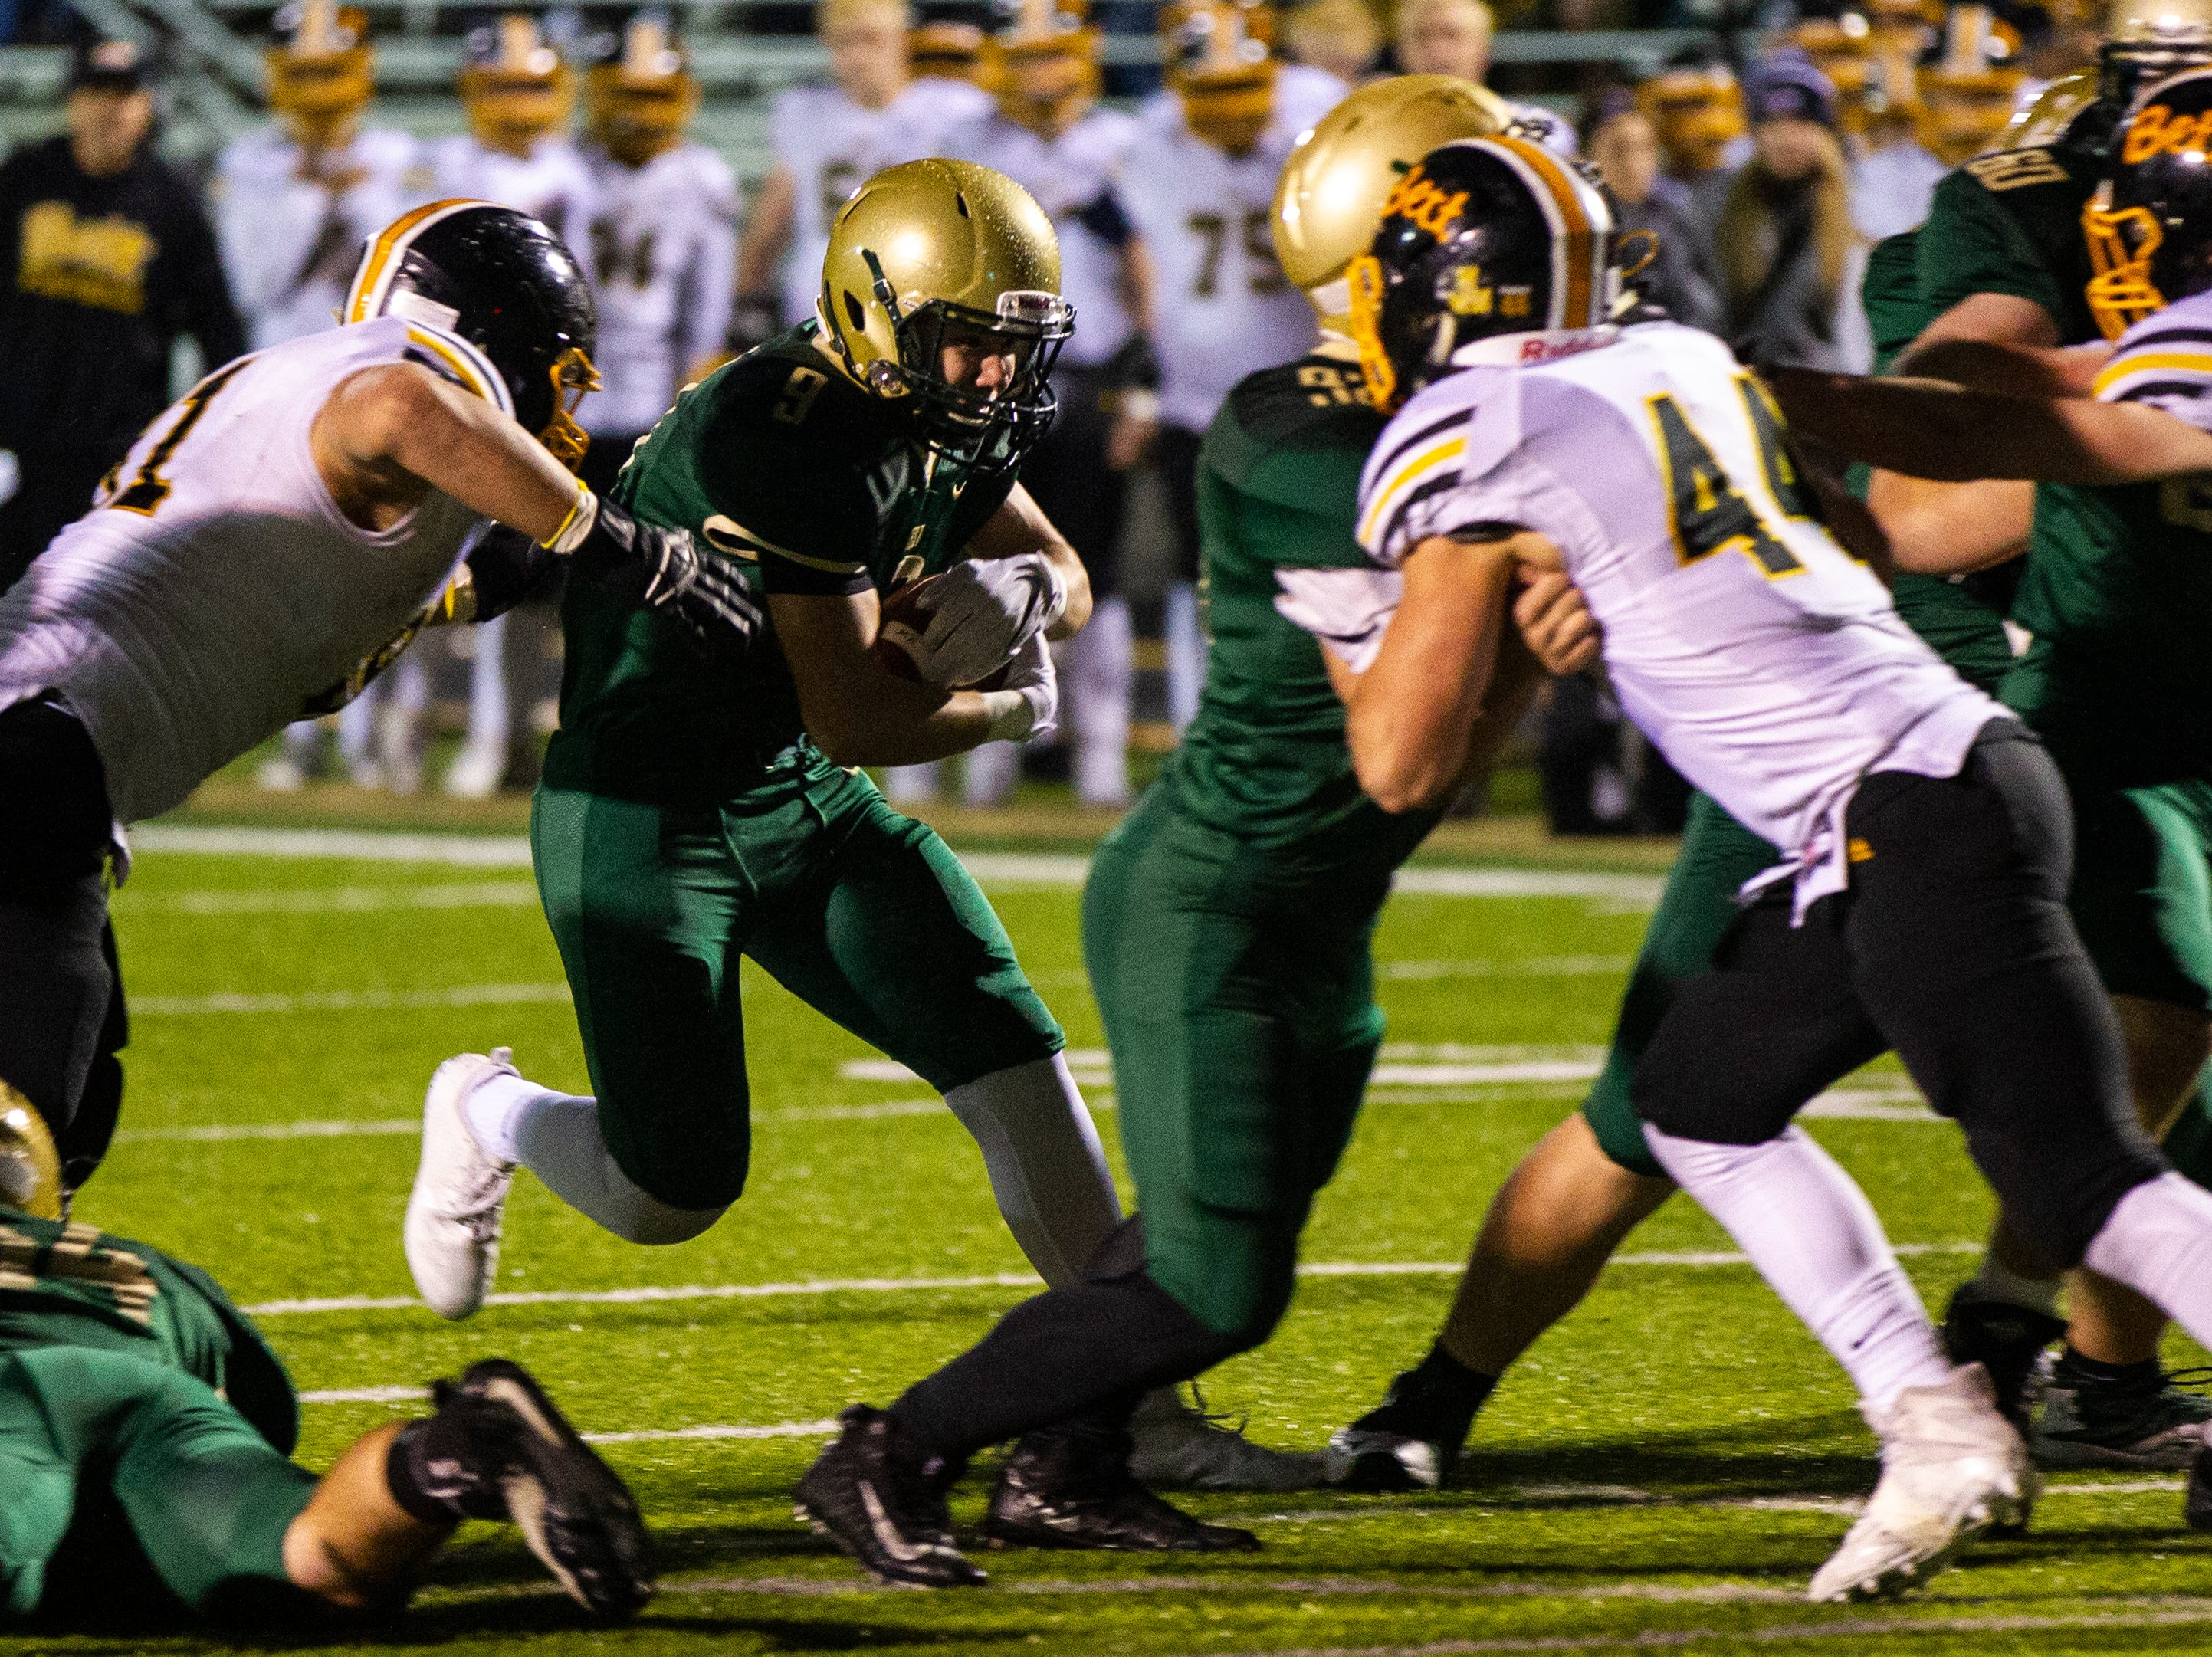 Iowa City West's Peter Breitbach (9) rushes during a Class 4A quarter final football game on Friday, Nov. 2, 2018, at Trojan Field in Iowa City.